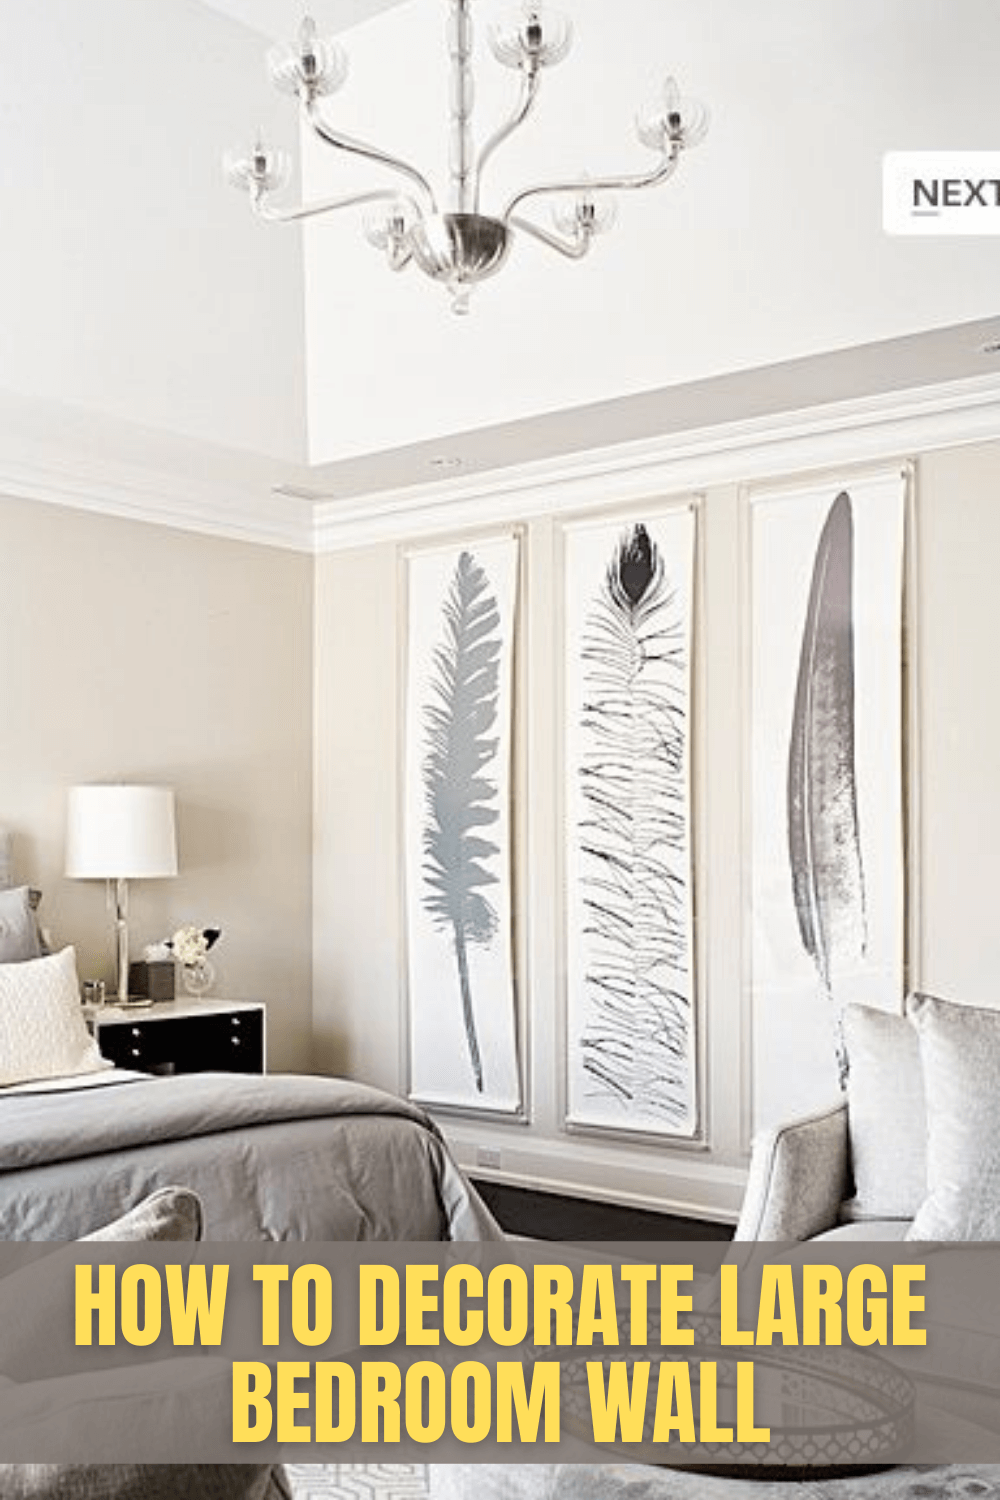 HOW TO DECORATE LARGE BEDROOM WALL